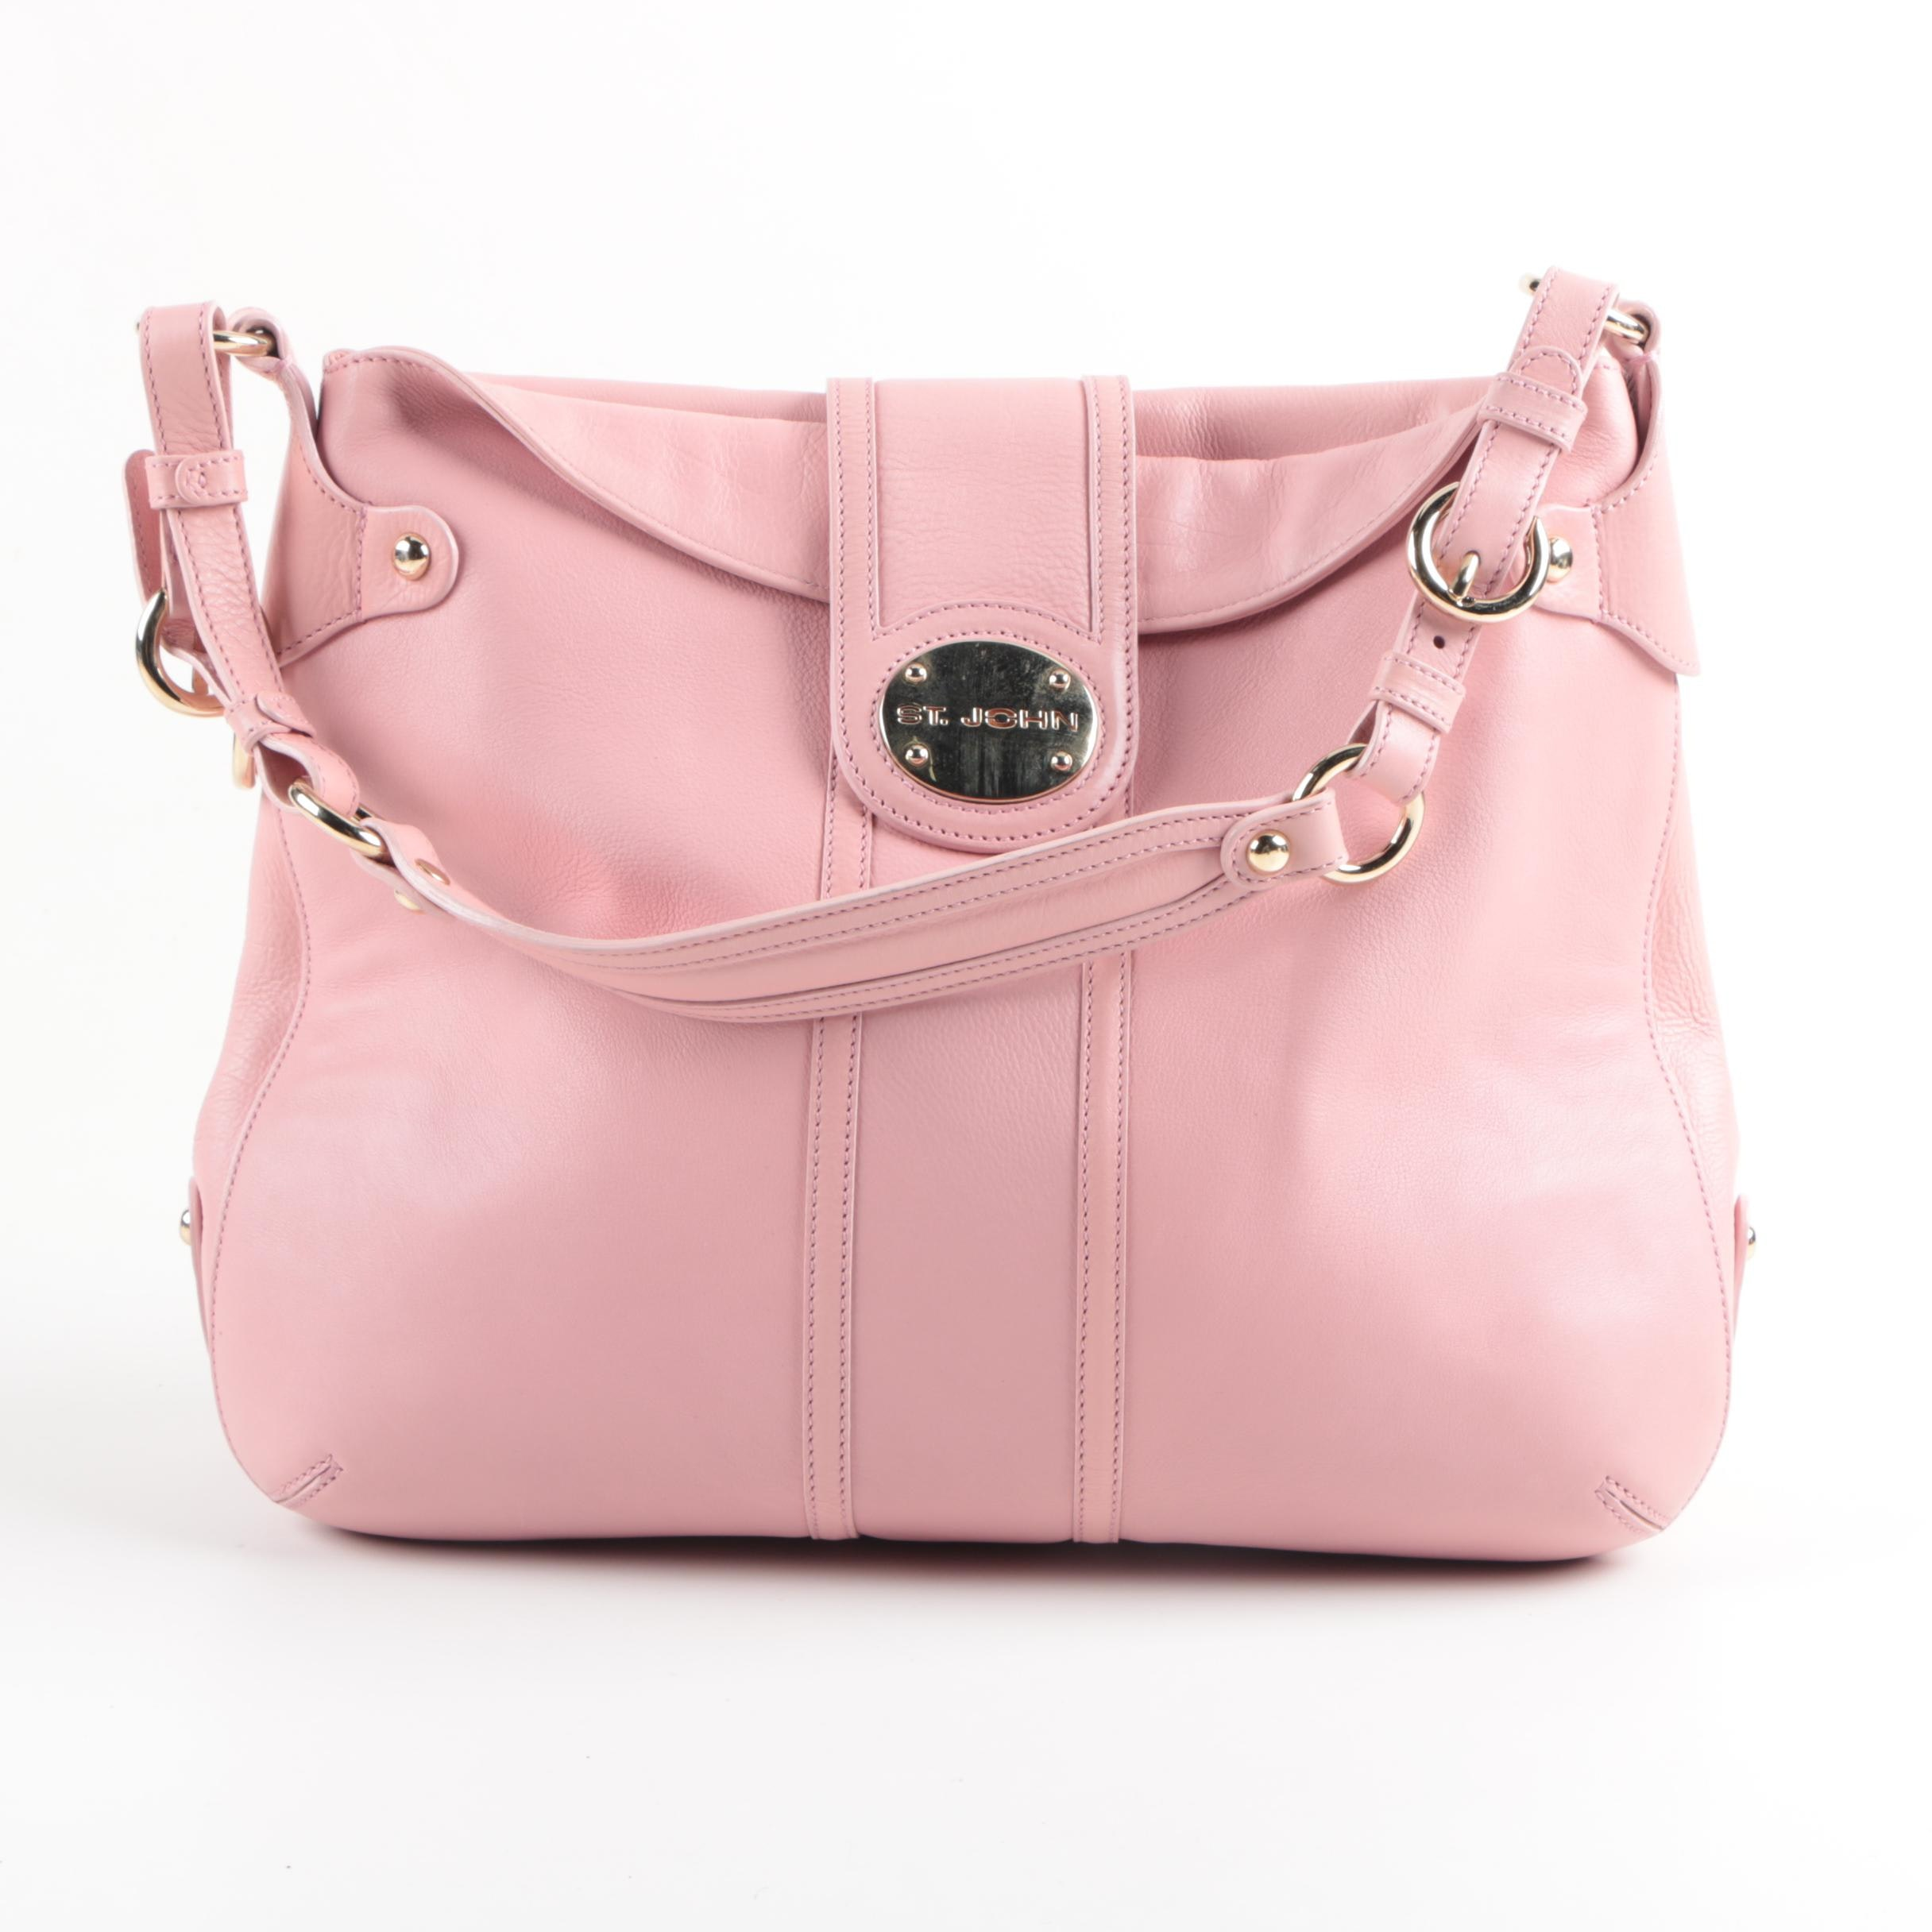 St. John Pink Leather Shoulder Bag